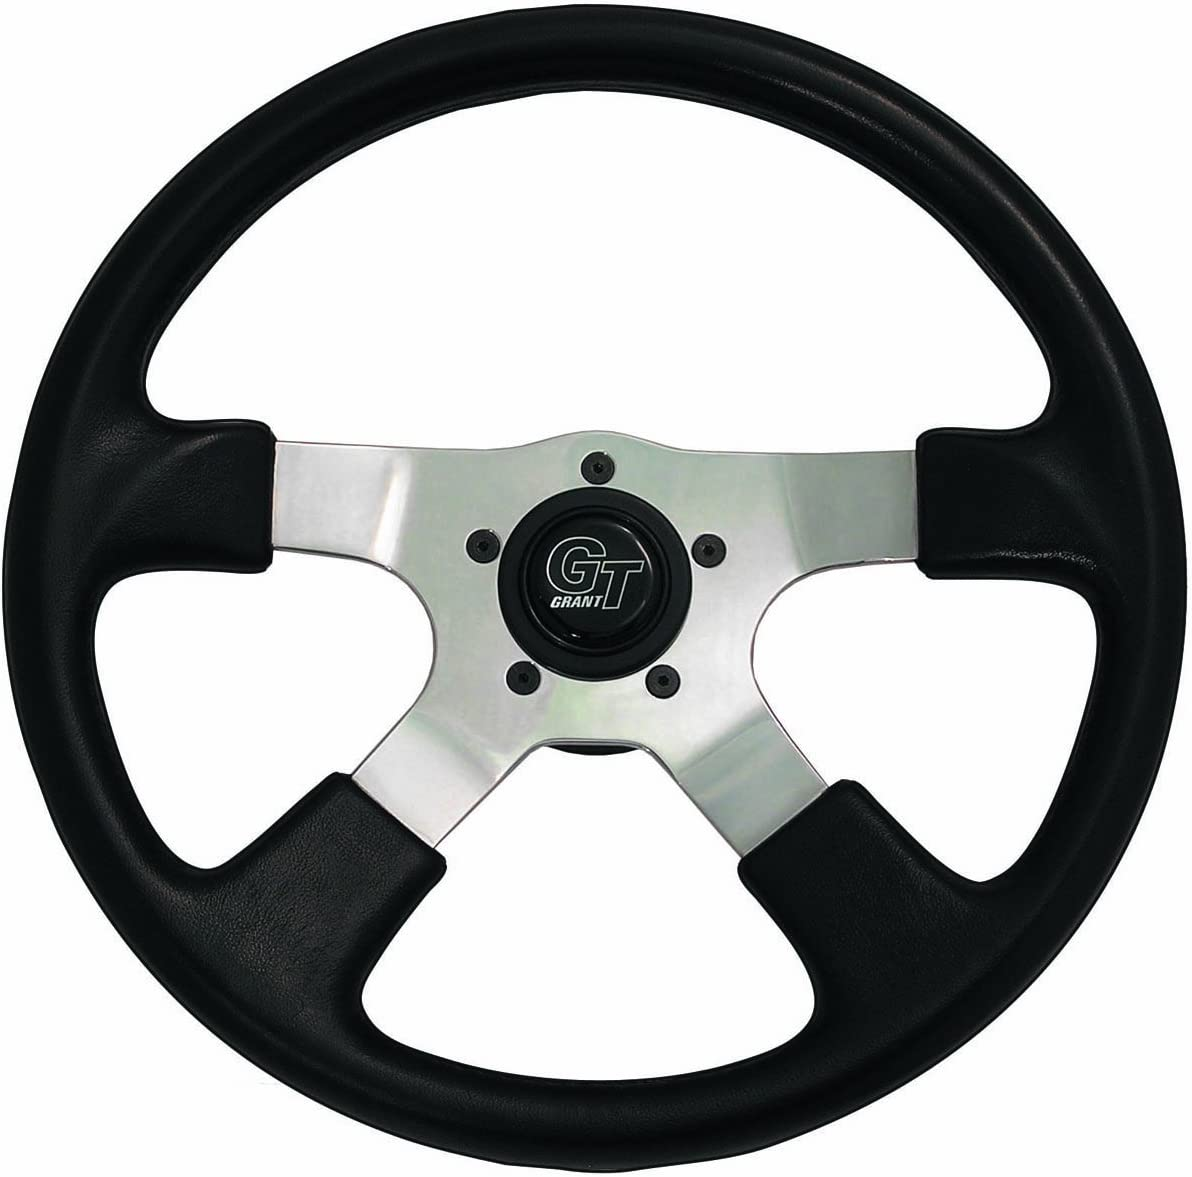 Grant Products 1108 GT Rally Wheel